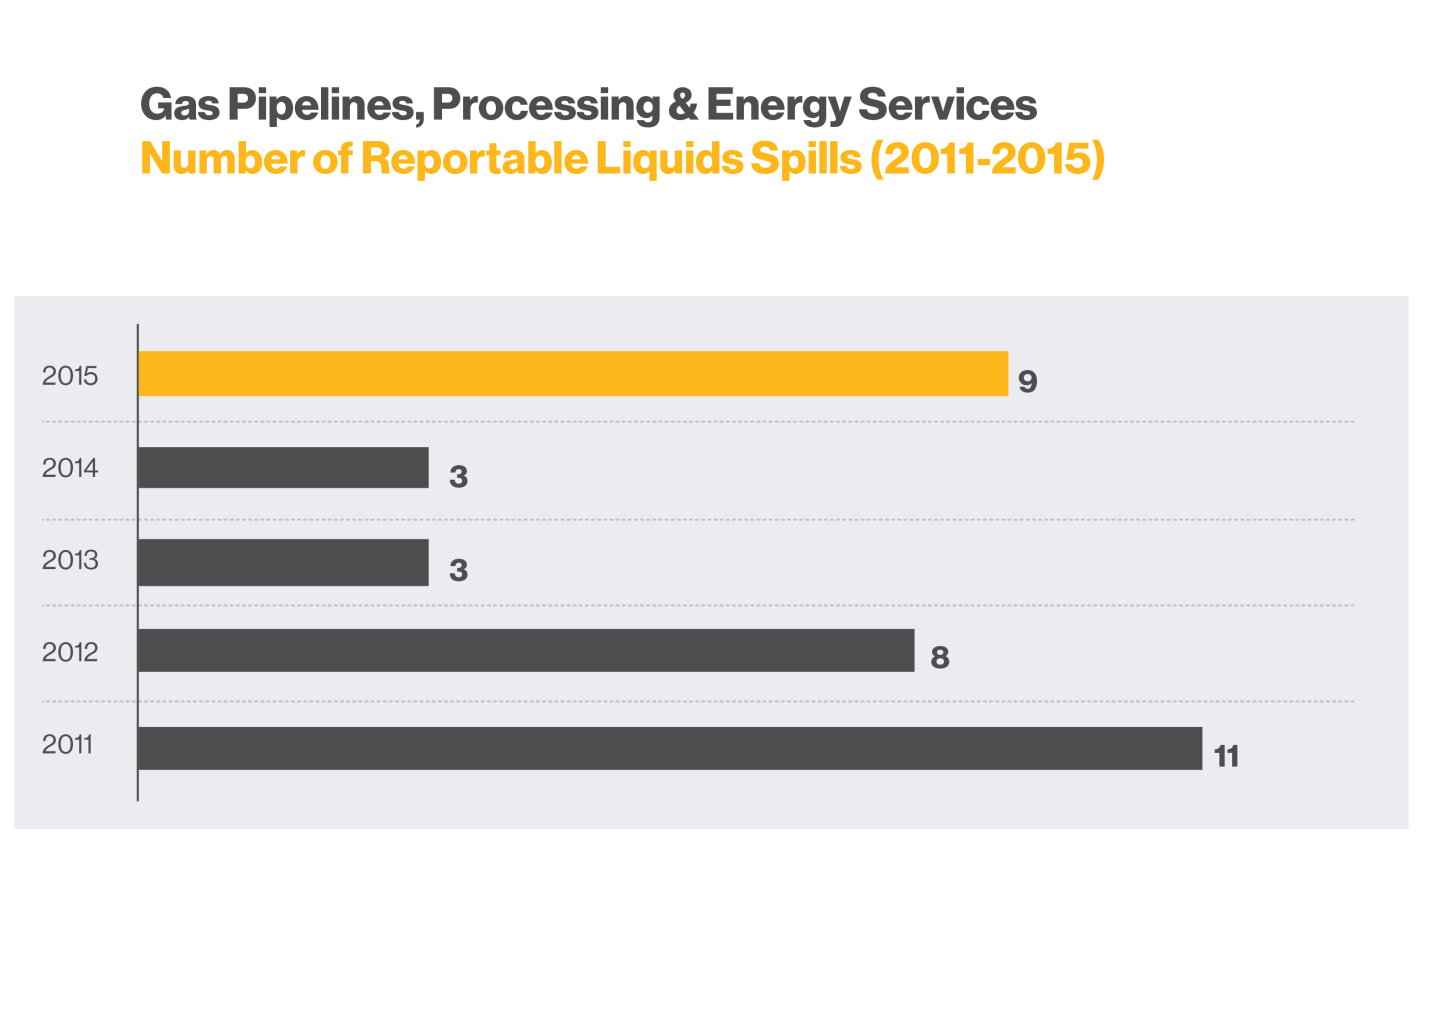 gp_Number_of_Reportable_Liquids_Spills_2011-2015